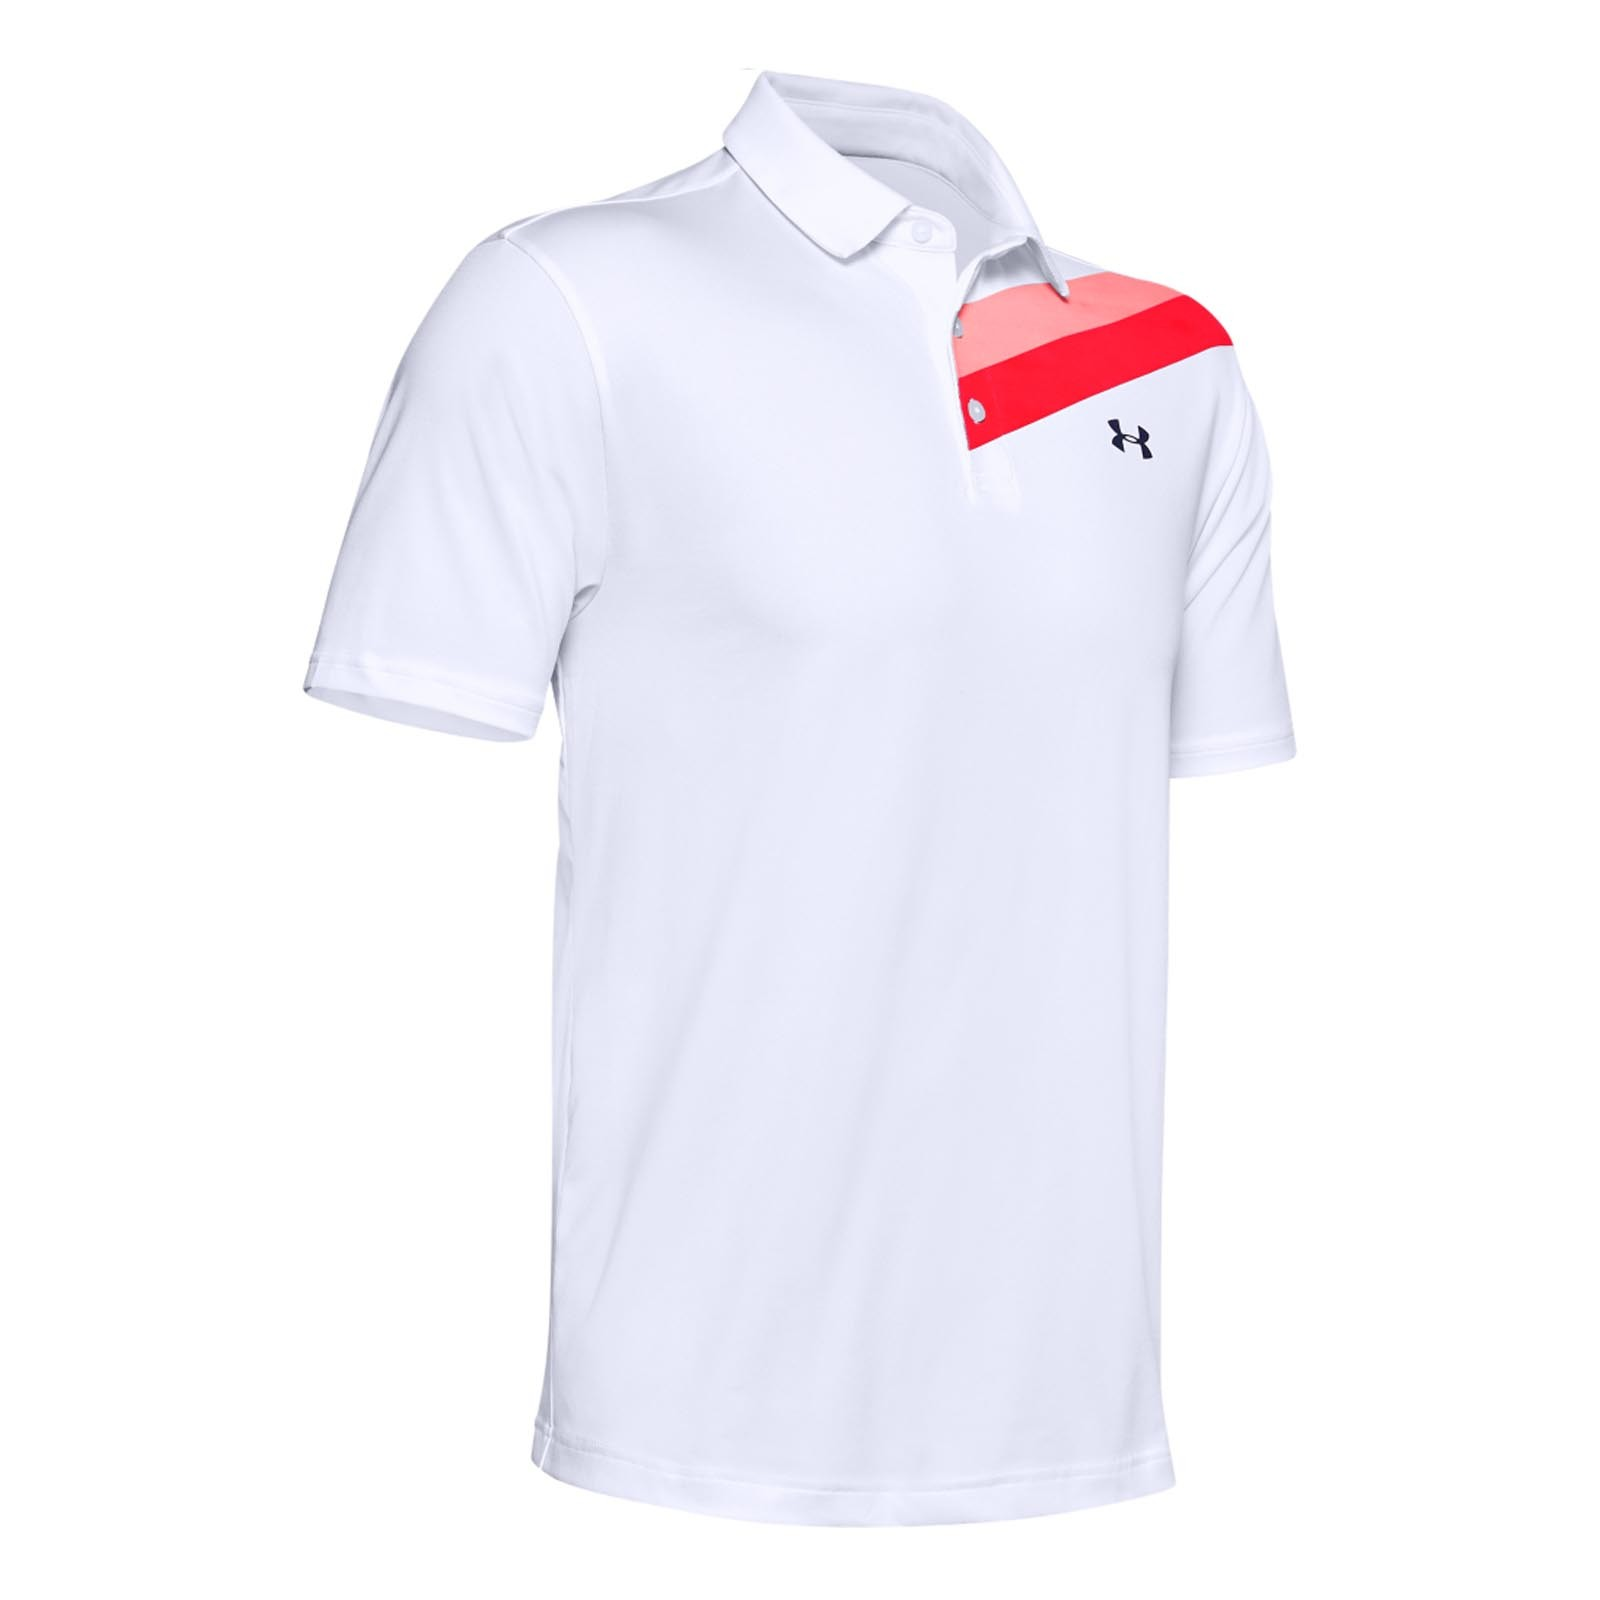 Under Armour Playoff Polo 2.0 Shoulder Graphic Polo Shirts